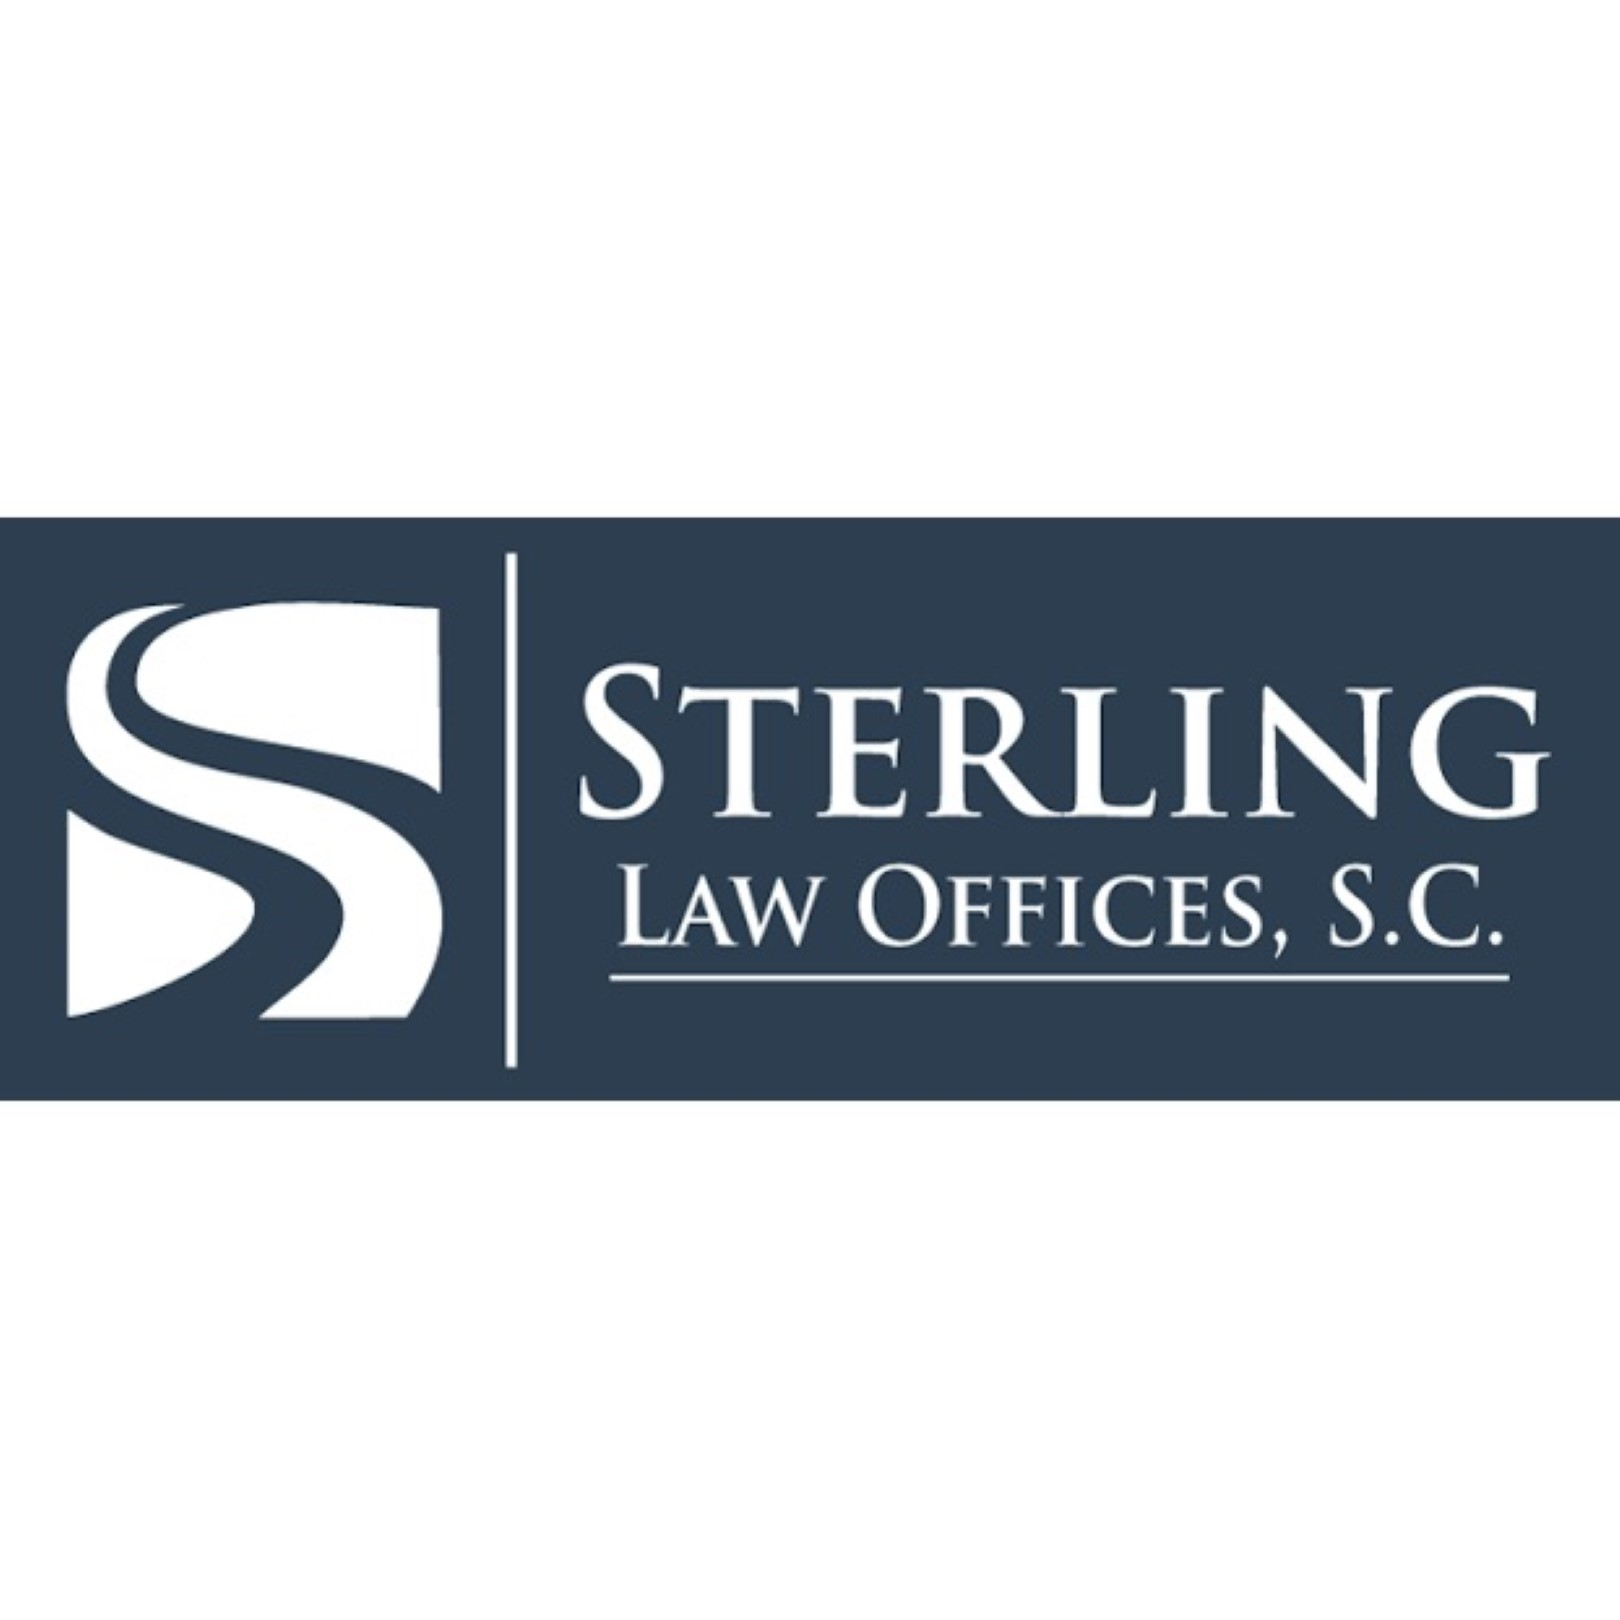 Sterling Law Offices, S.C. image 0